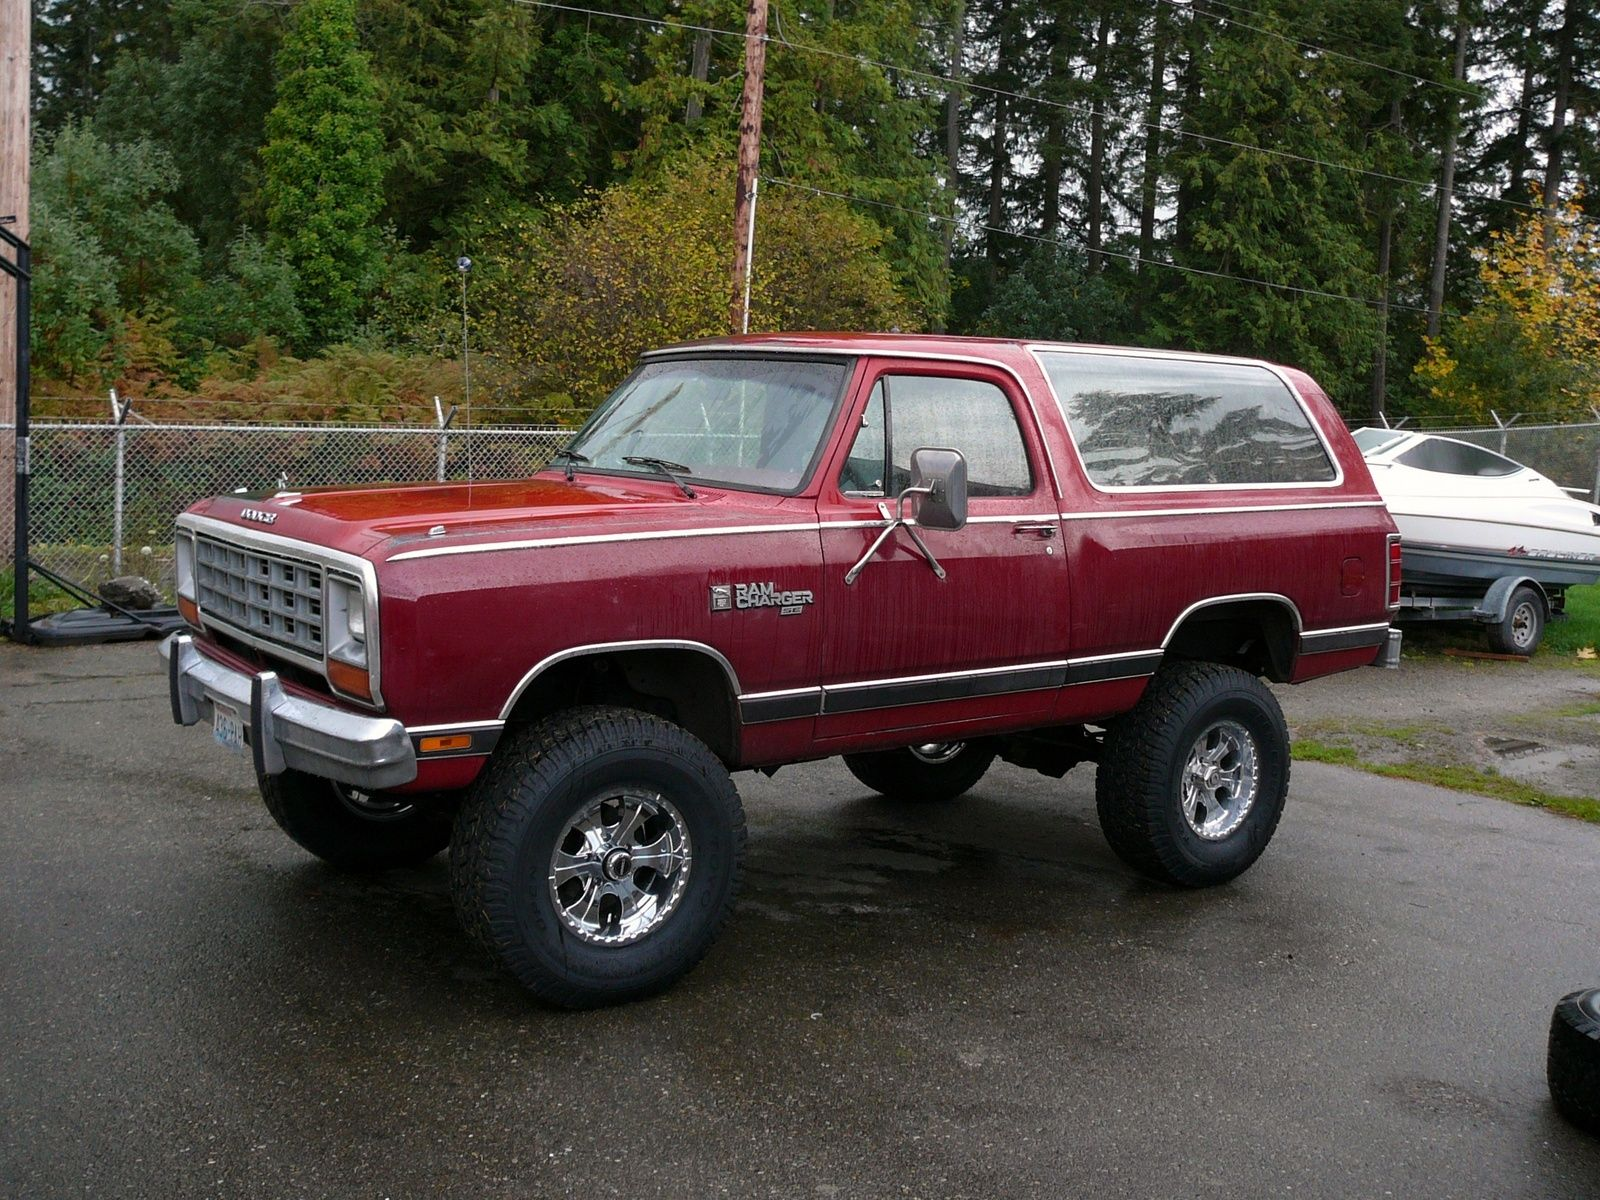 My dad had a ramcharger when i was little